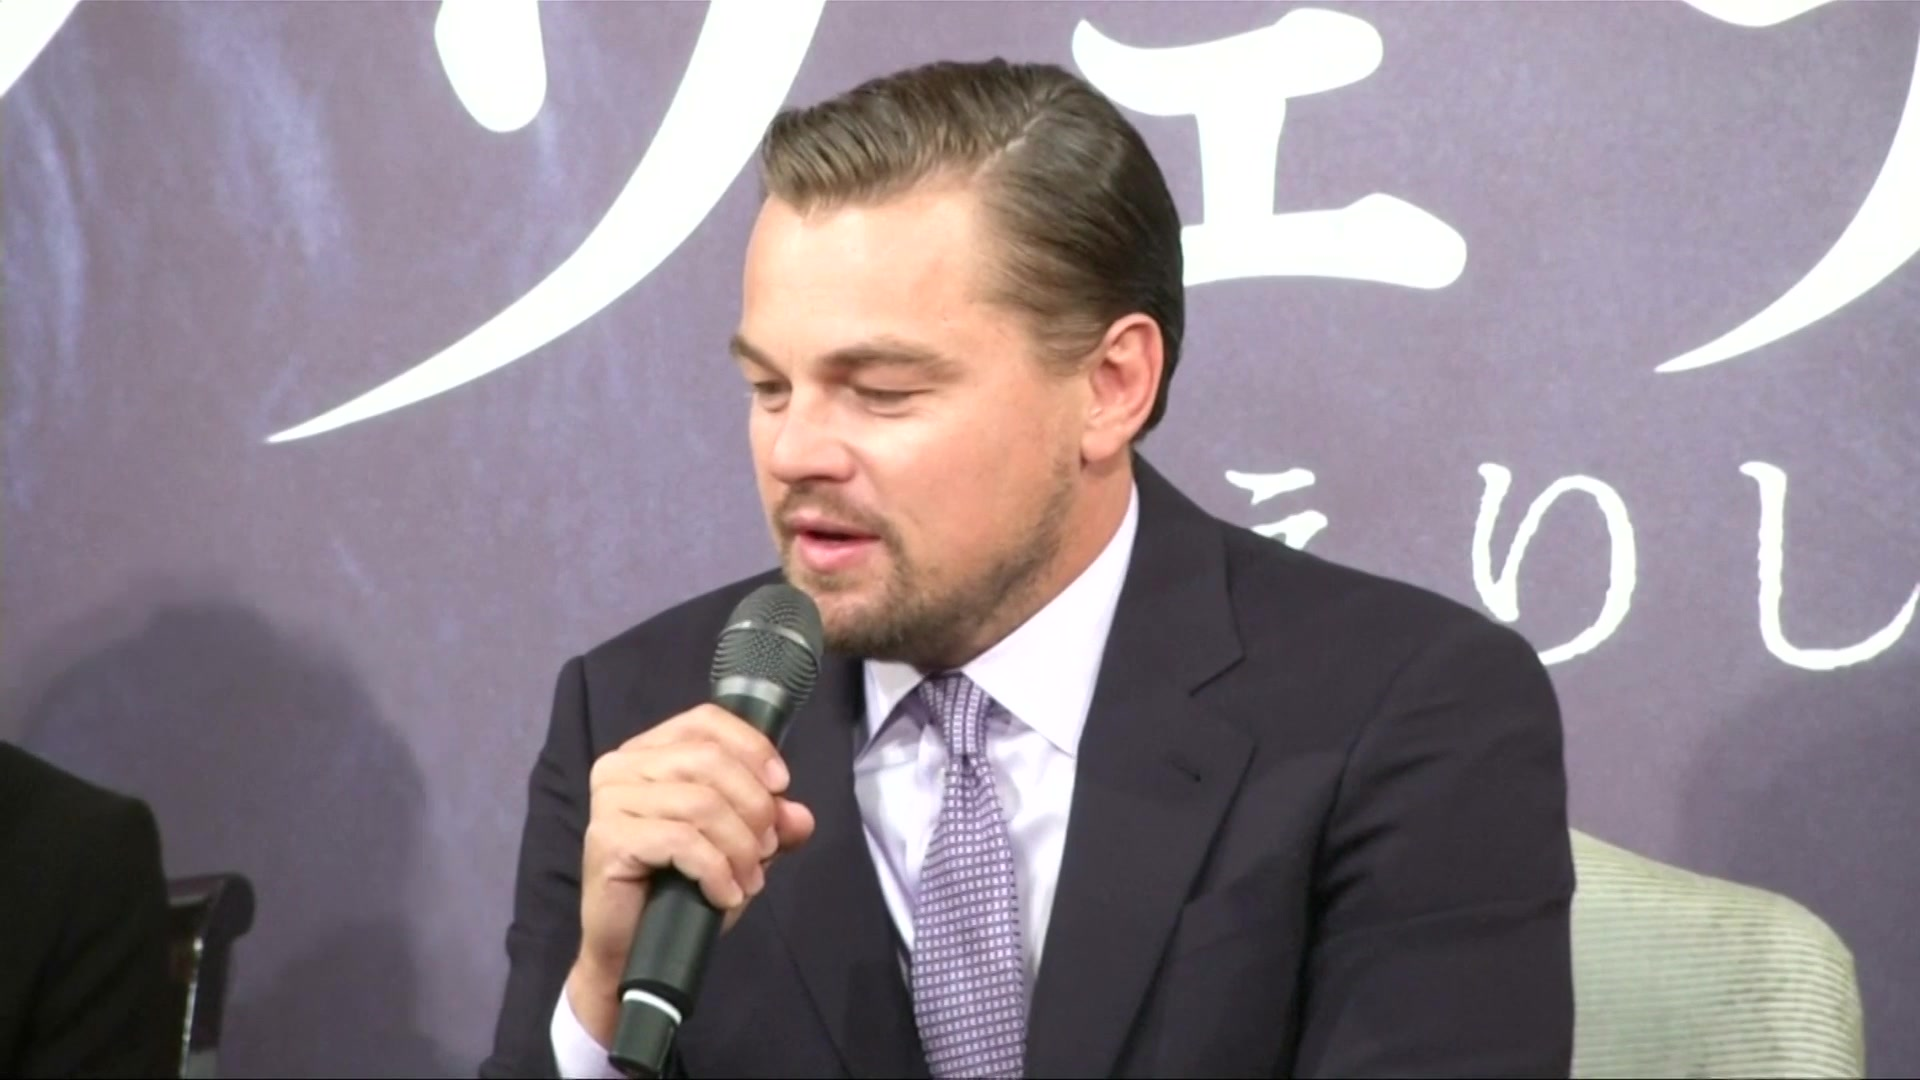 DiCaprio Brings 'The Revenant' to Japan